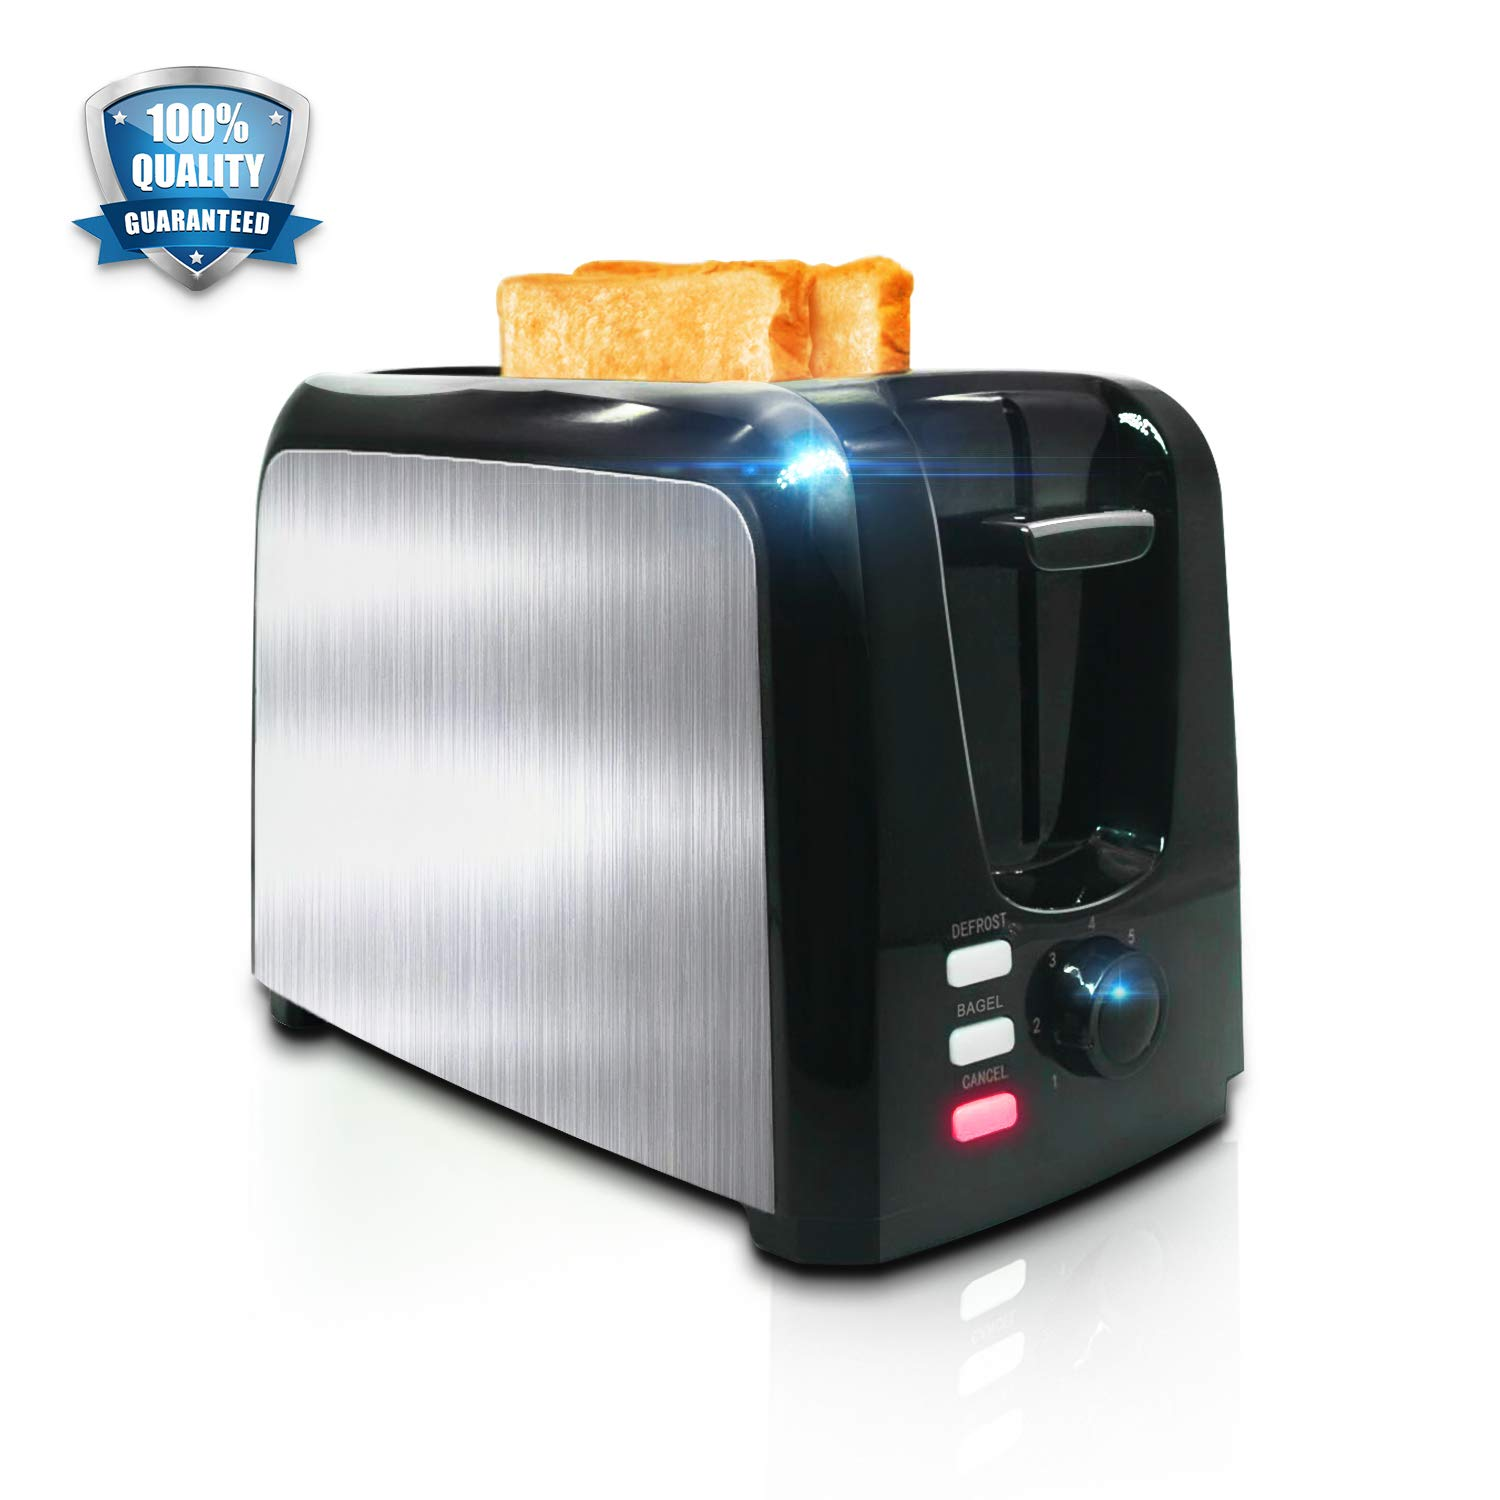 Toaster 2 Slice │ Toasters Toast Perfectly│Stainless Steel 2 Slice Toaster With Bagel Defrost Cancel Function│ Cool Touch Black Compact Bread Toasters 2 Slice Best Rated Prime Top With Two Extra Wide Slots, 7 Shade Setting, Removable Crumb Tray